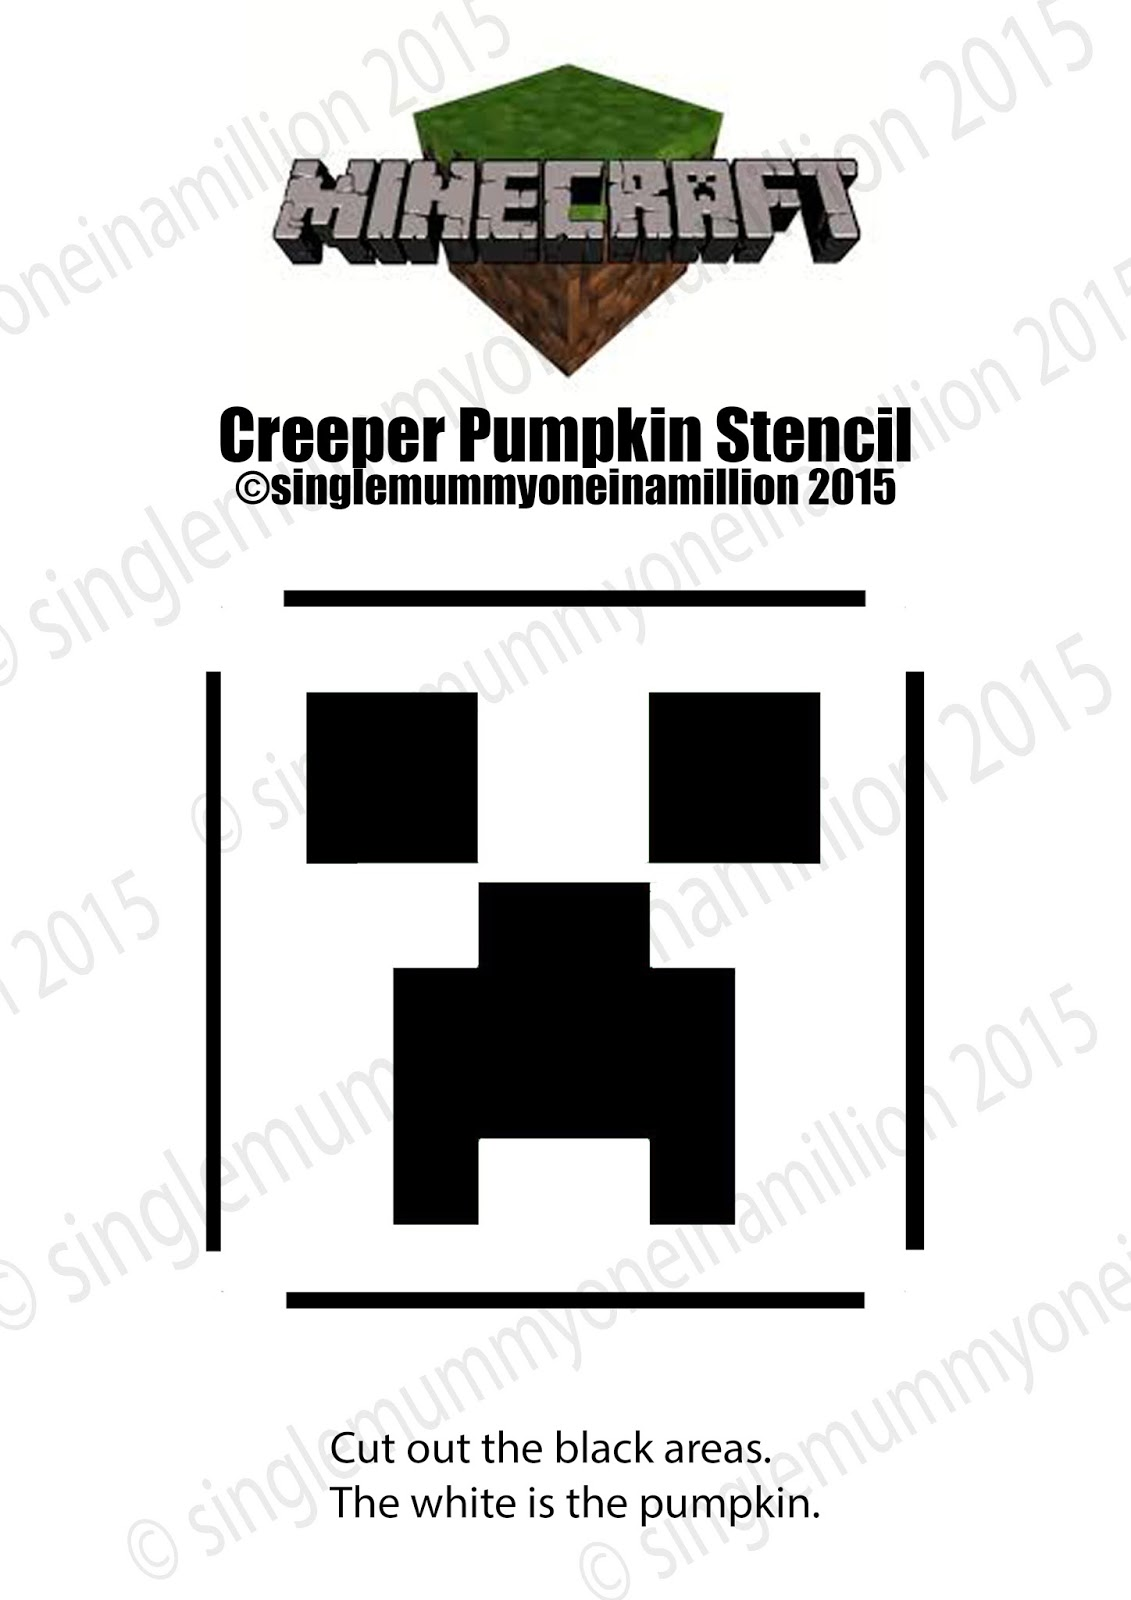 Single mummy one in a million creeper minecraft pumpkin